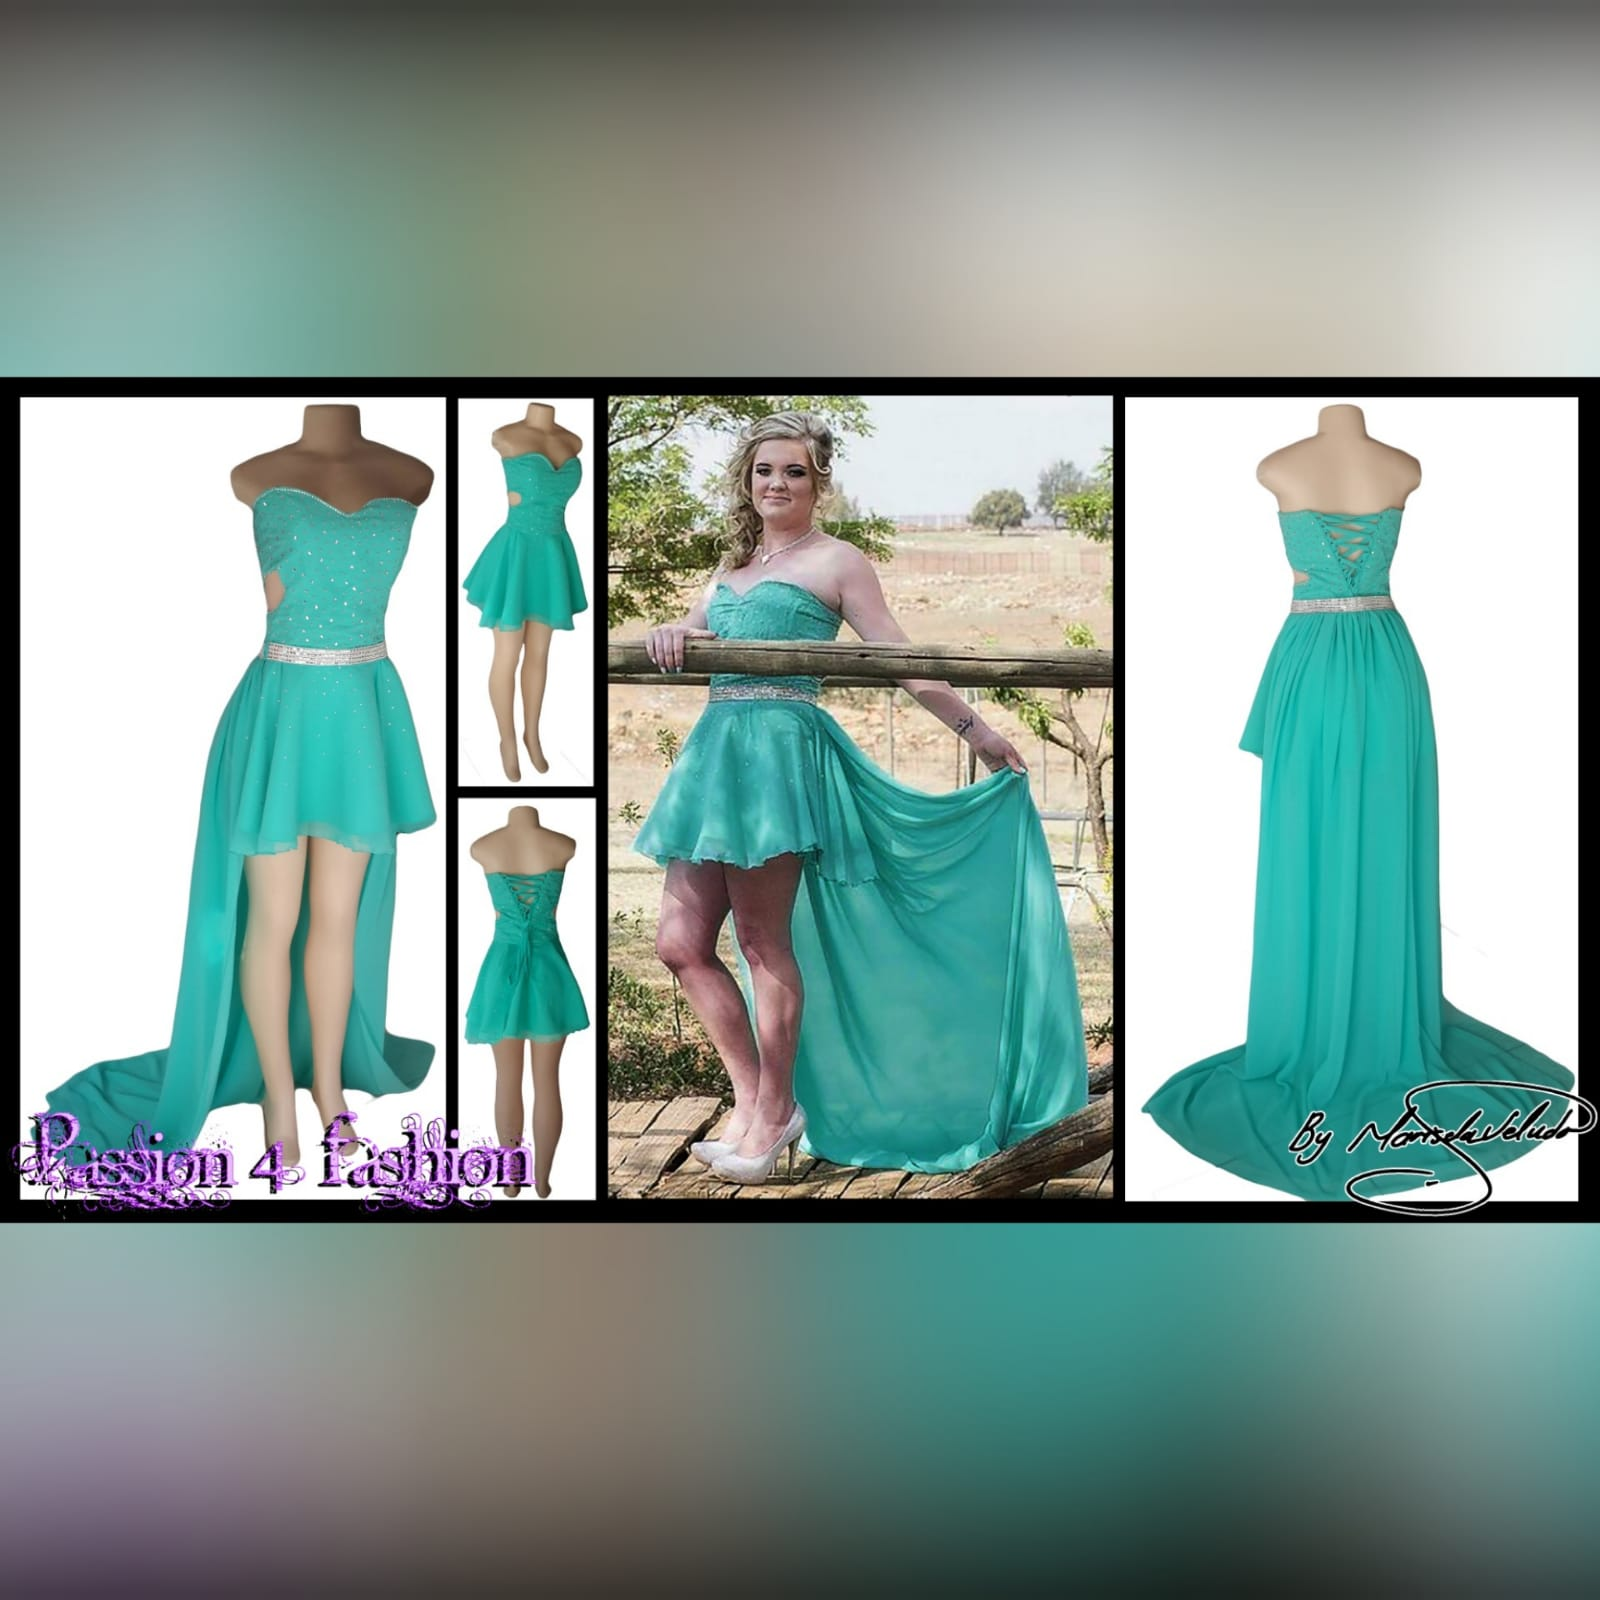 Turquoise 2 piece high low prom dress 4 turquoise 2 piece high low prom dress. Boobtube short dress with a sweetheart neckline and side tummy opening, lace-up back with bodice beaded in silver. With a detachable chiffon train creating a high low effect, with a wide silver belt.